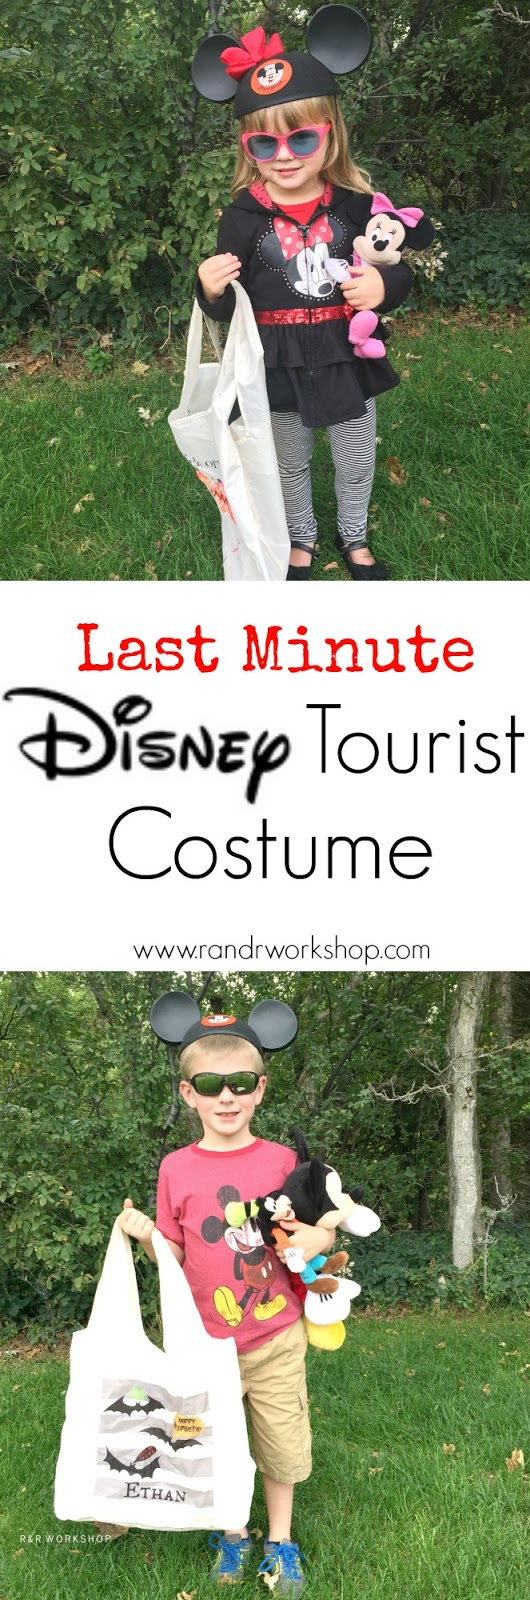 Diy Disney Tourist Costume